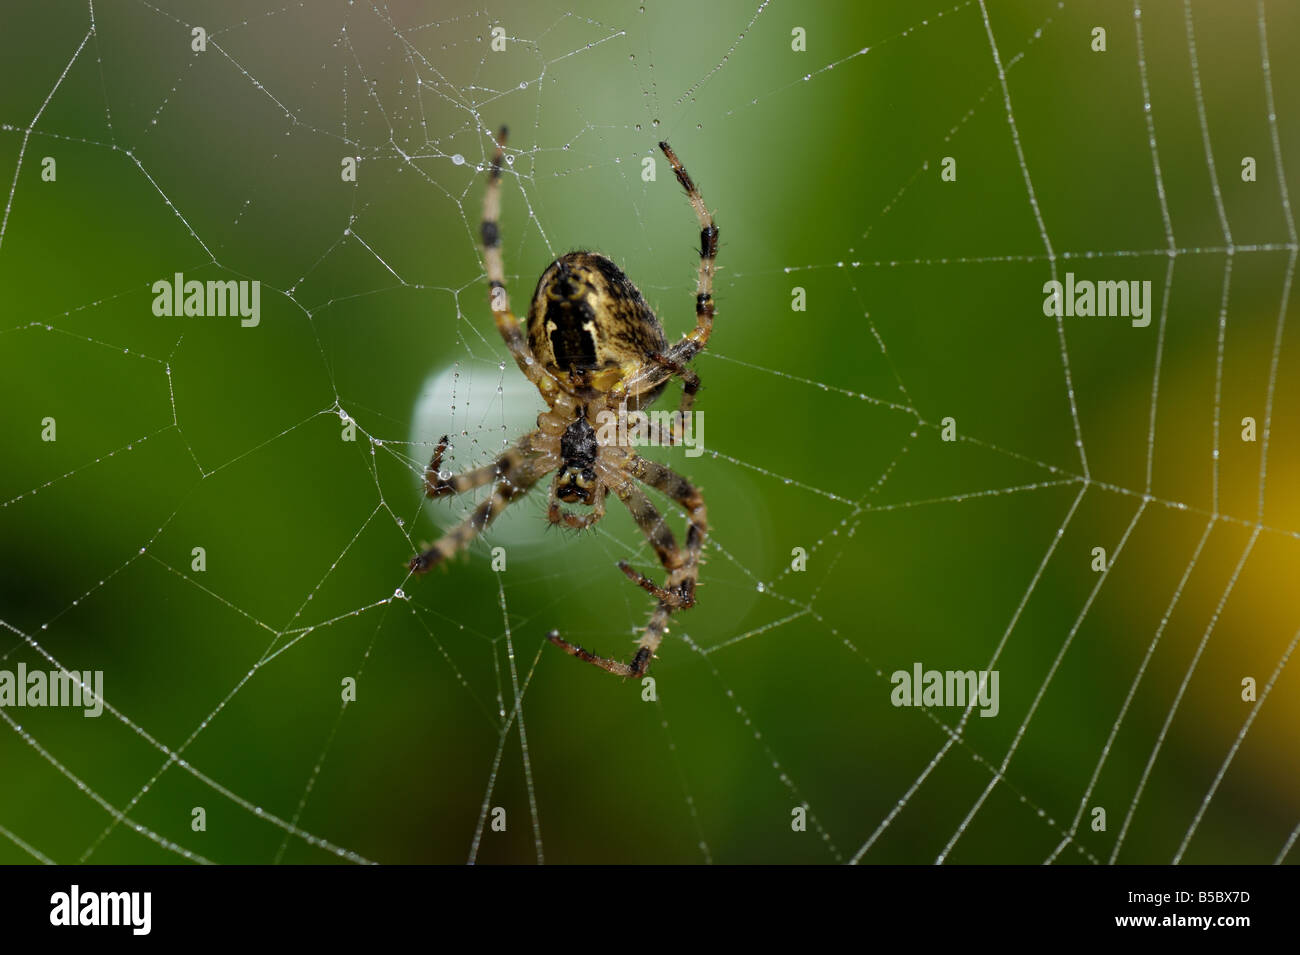 Garden spider (Araneus diadematus) waiting at the centre of an orb web in autumn - Stock Image